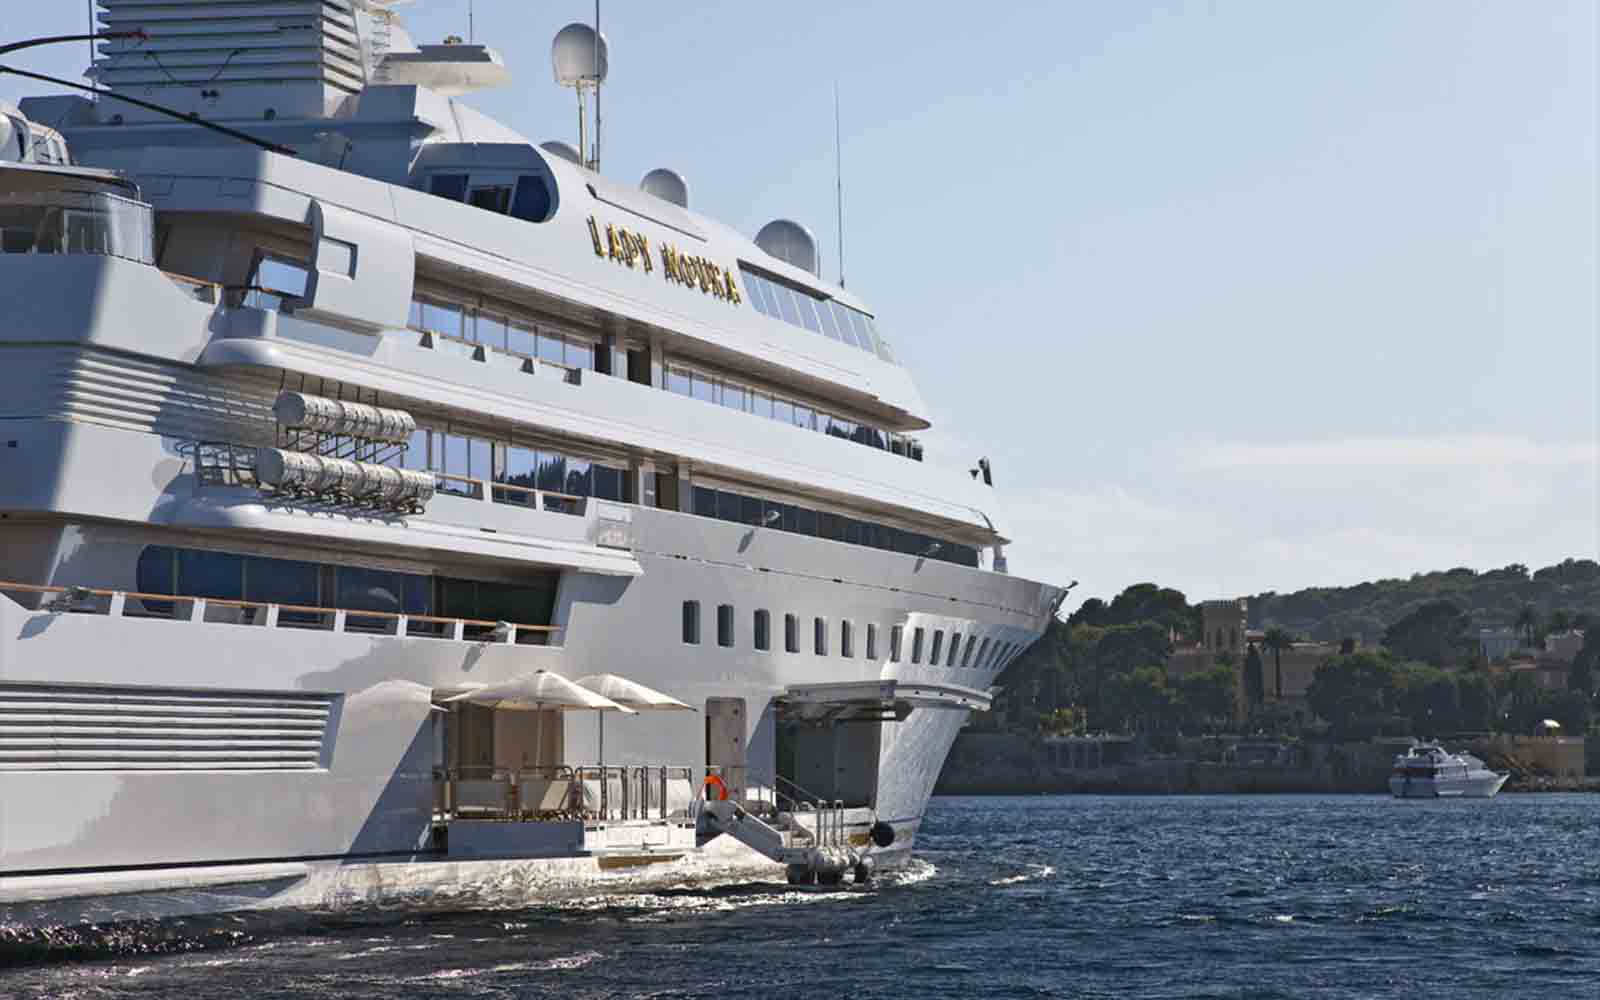 Superyacht Lady Moura - boat shopping